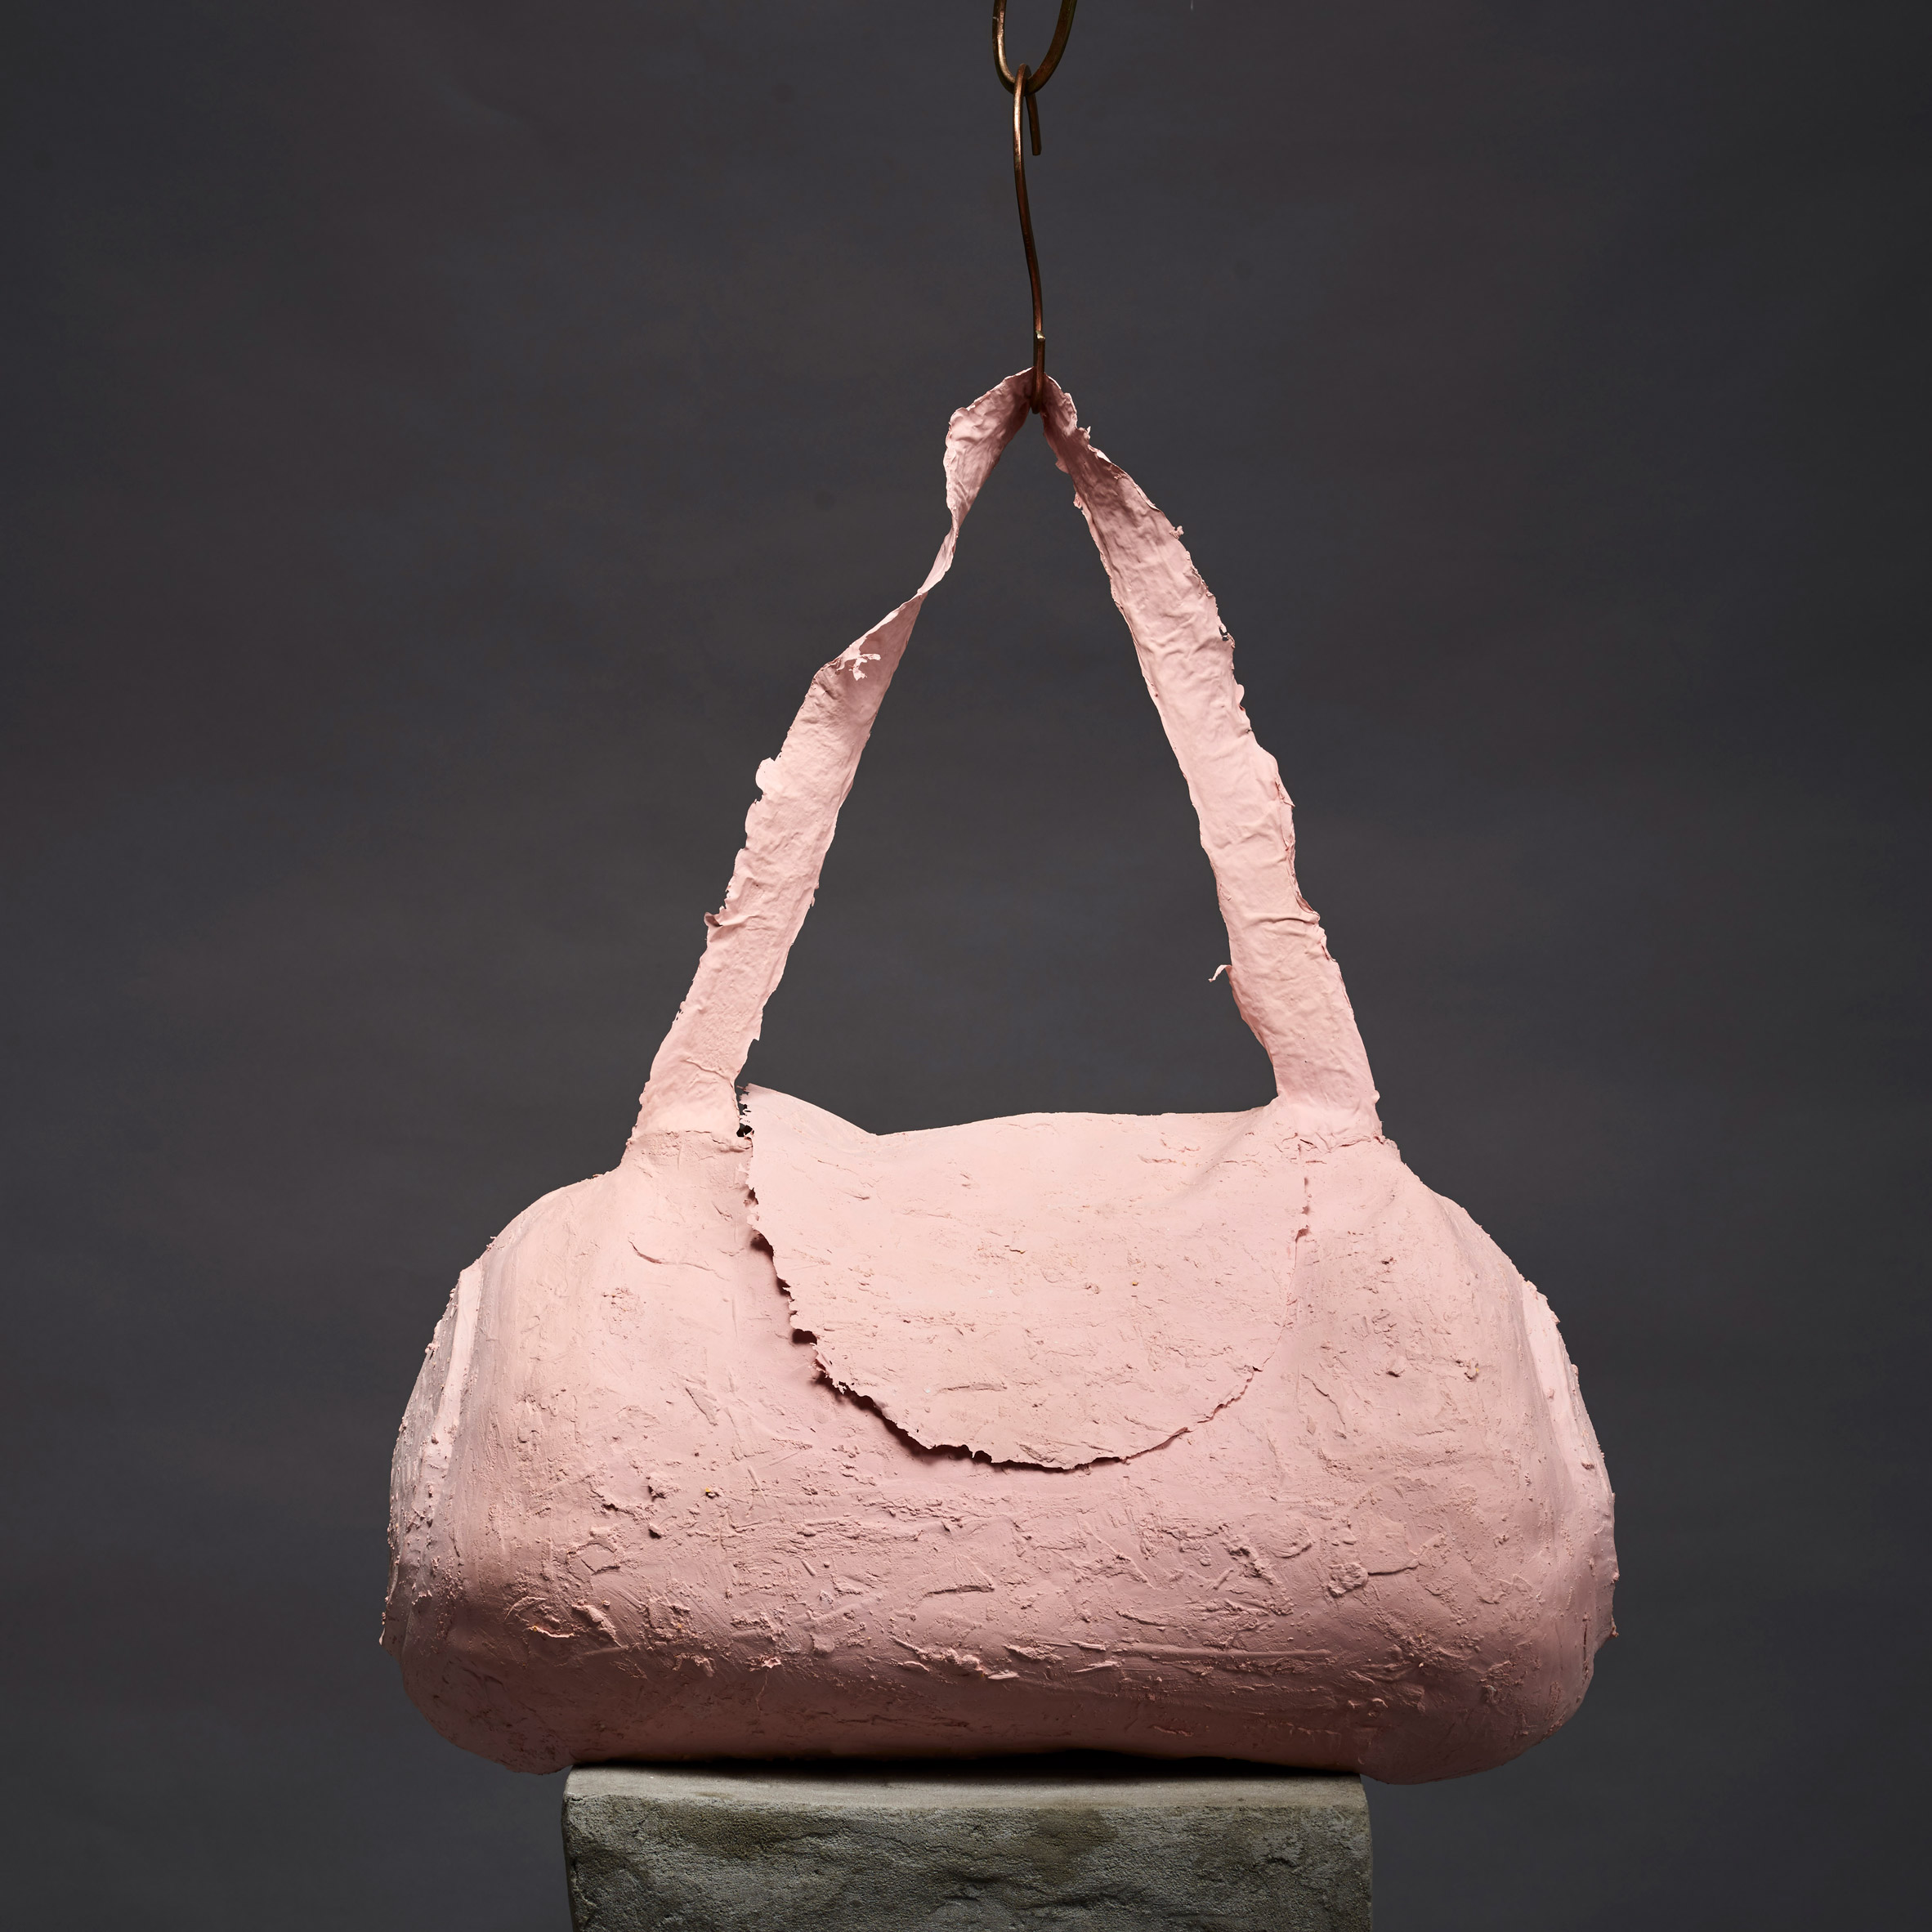 Range 1 – Early Sculptural Forms by Molly Younger